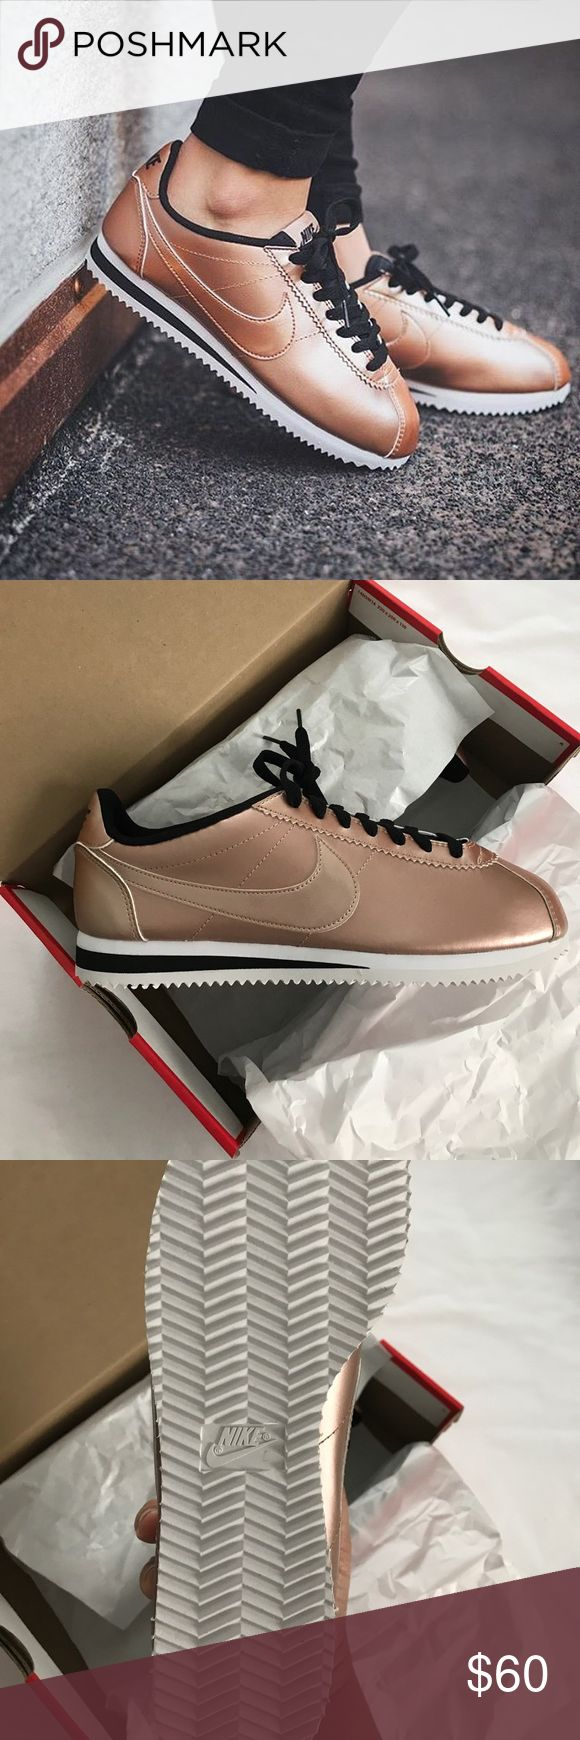 Nike Cortez Rose gold Nike Cortez never worn. Size is 10.5, box included. Nike Shoes Sneakers